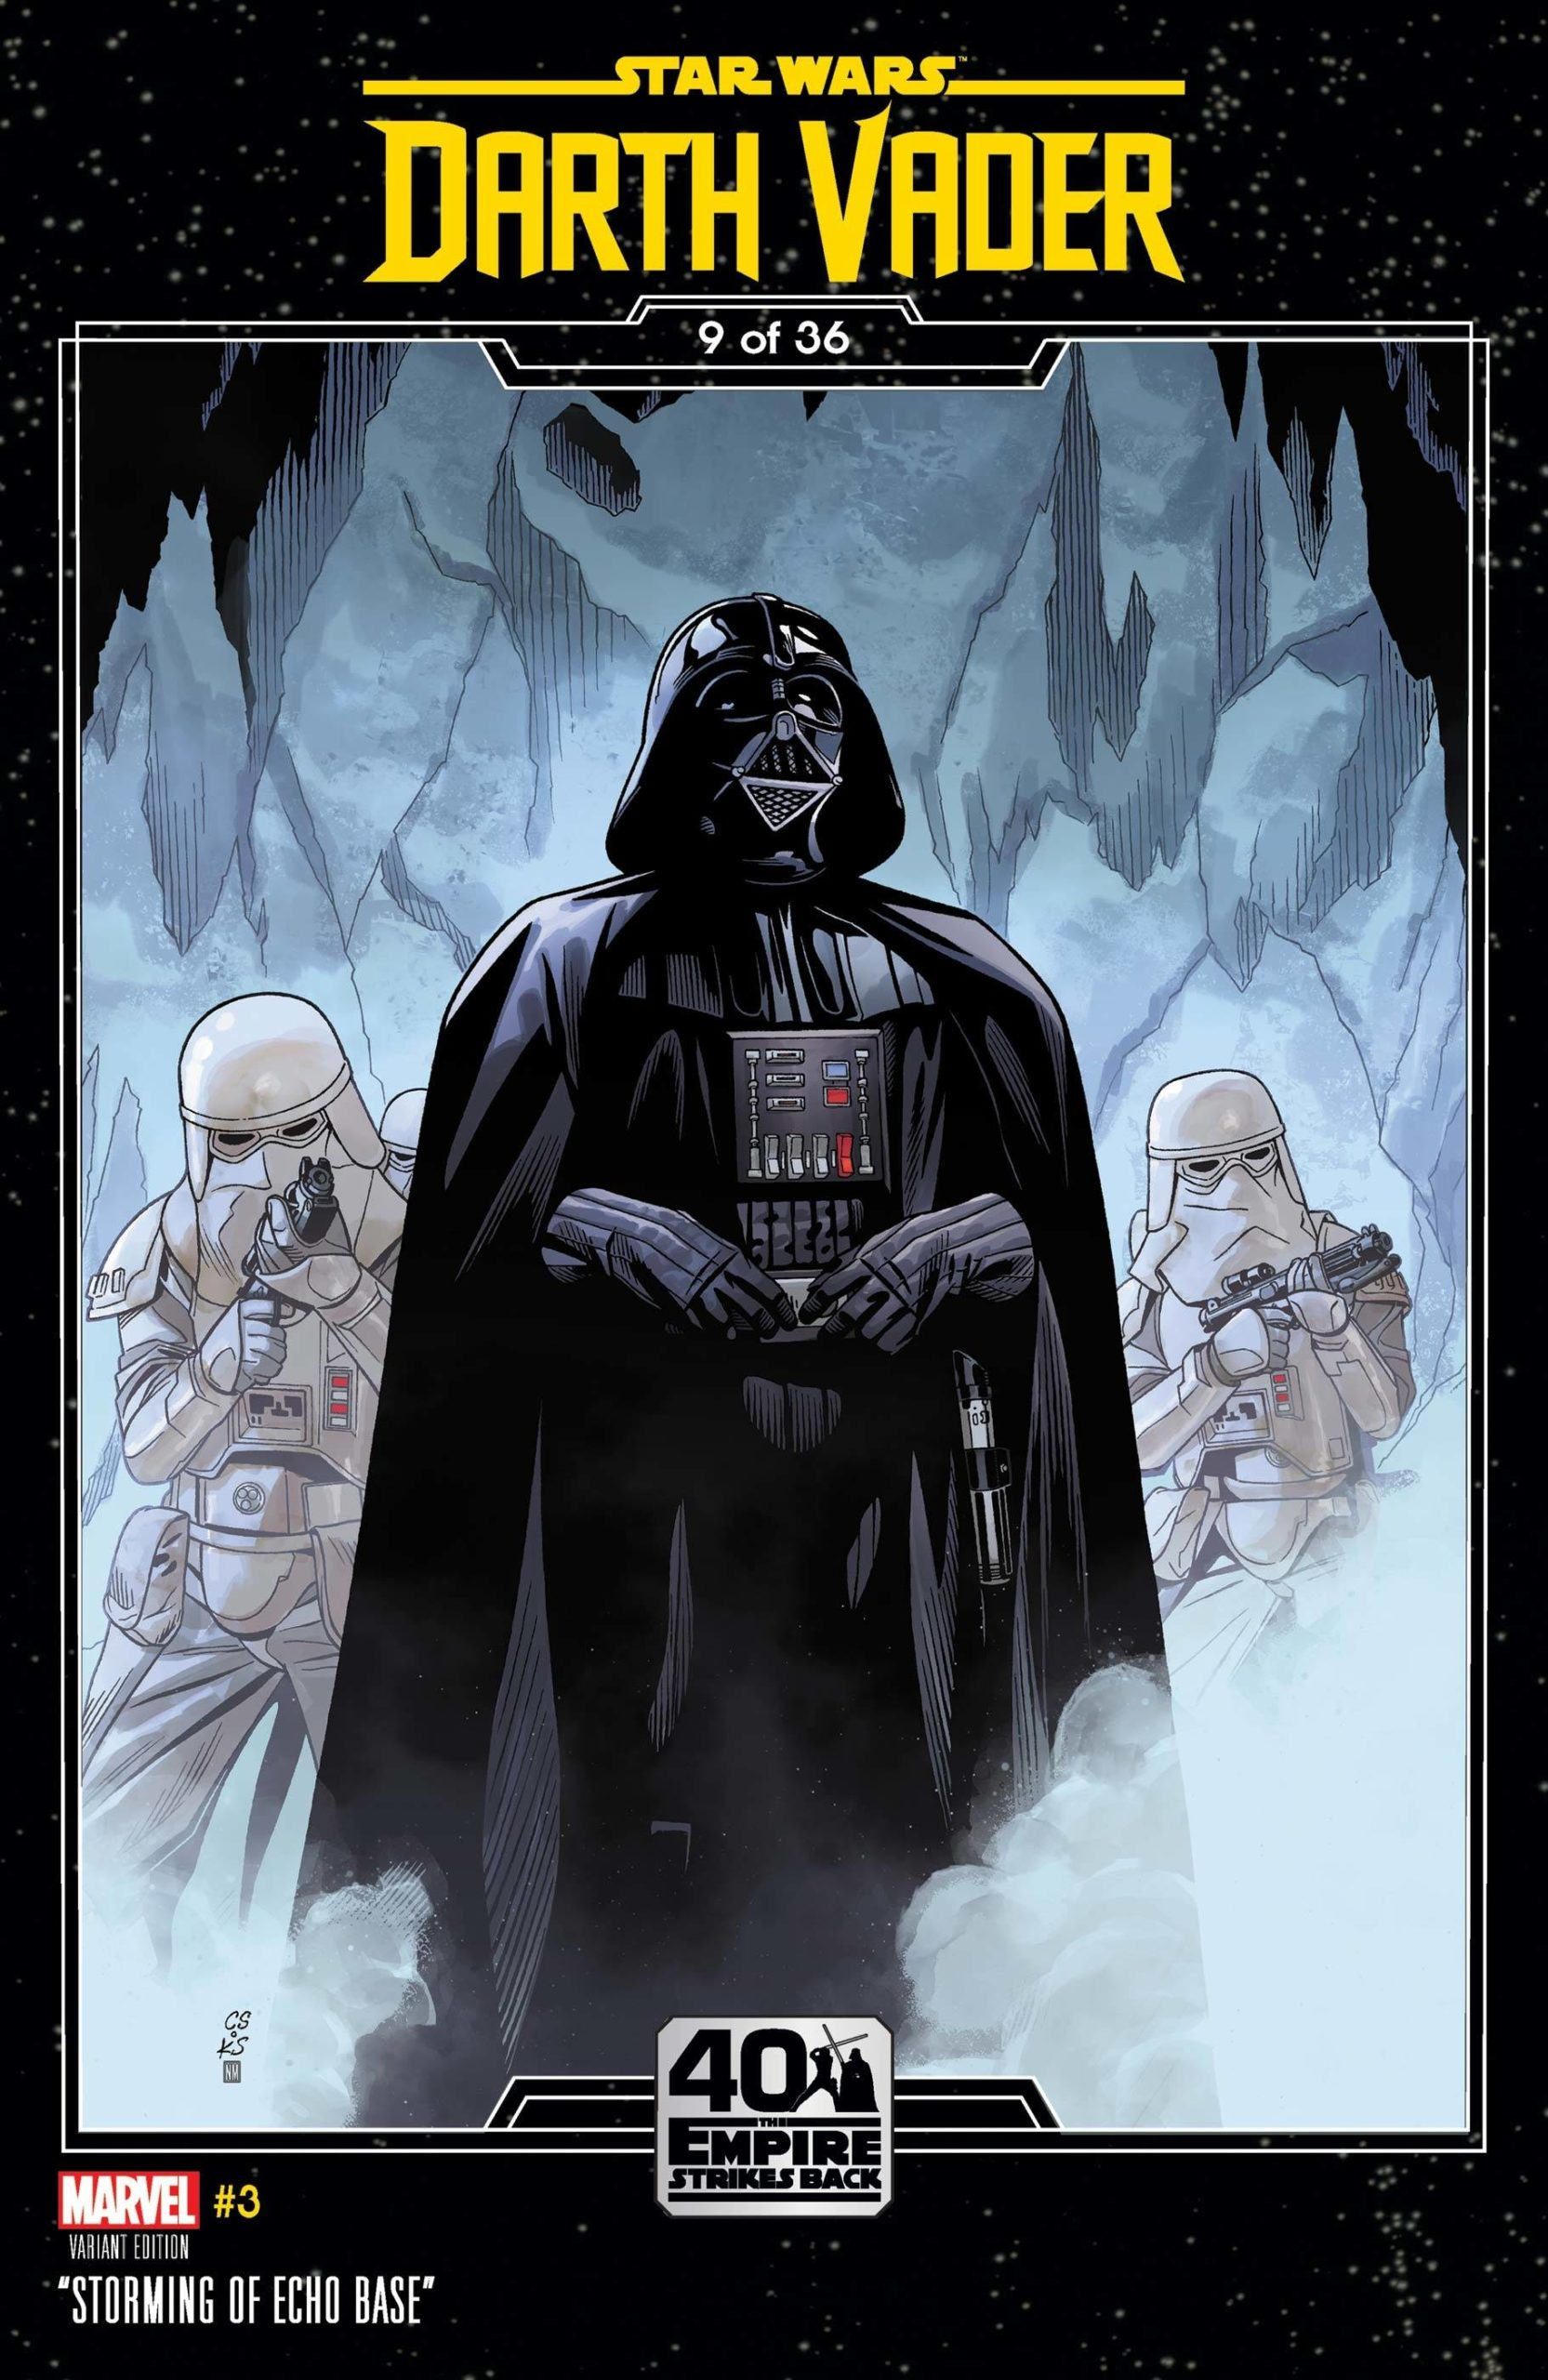 Darth Vader #3 (Chris Sprouse The Empire Strikes Back Variant Cover 9 of 36) (29.07.2020)